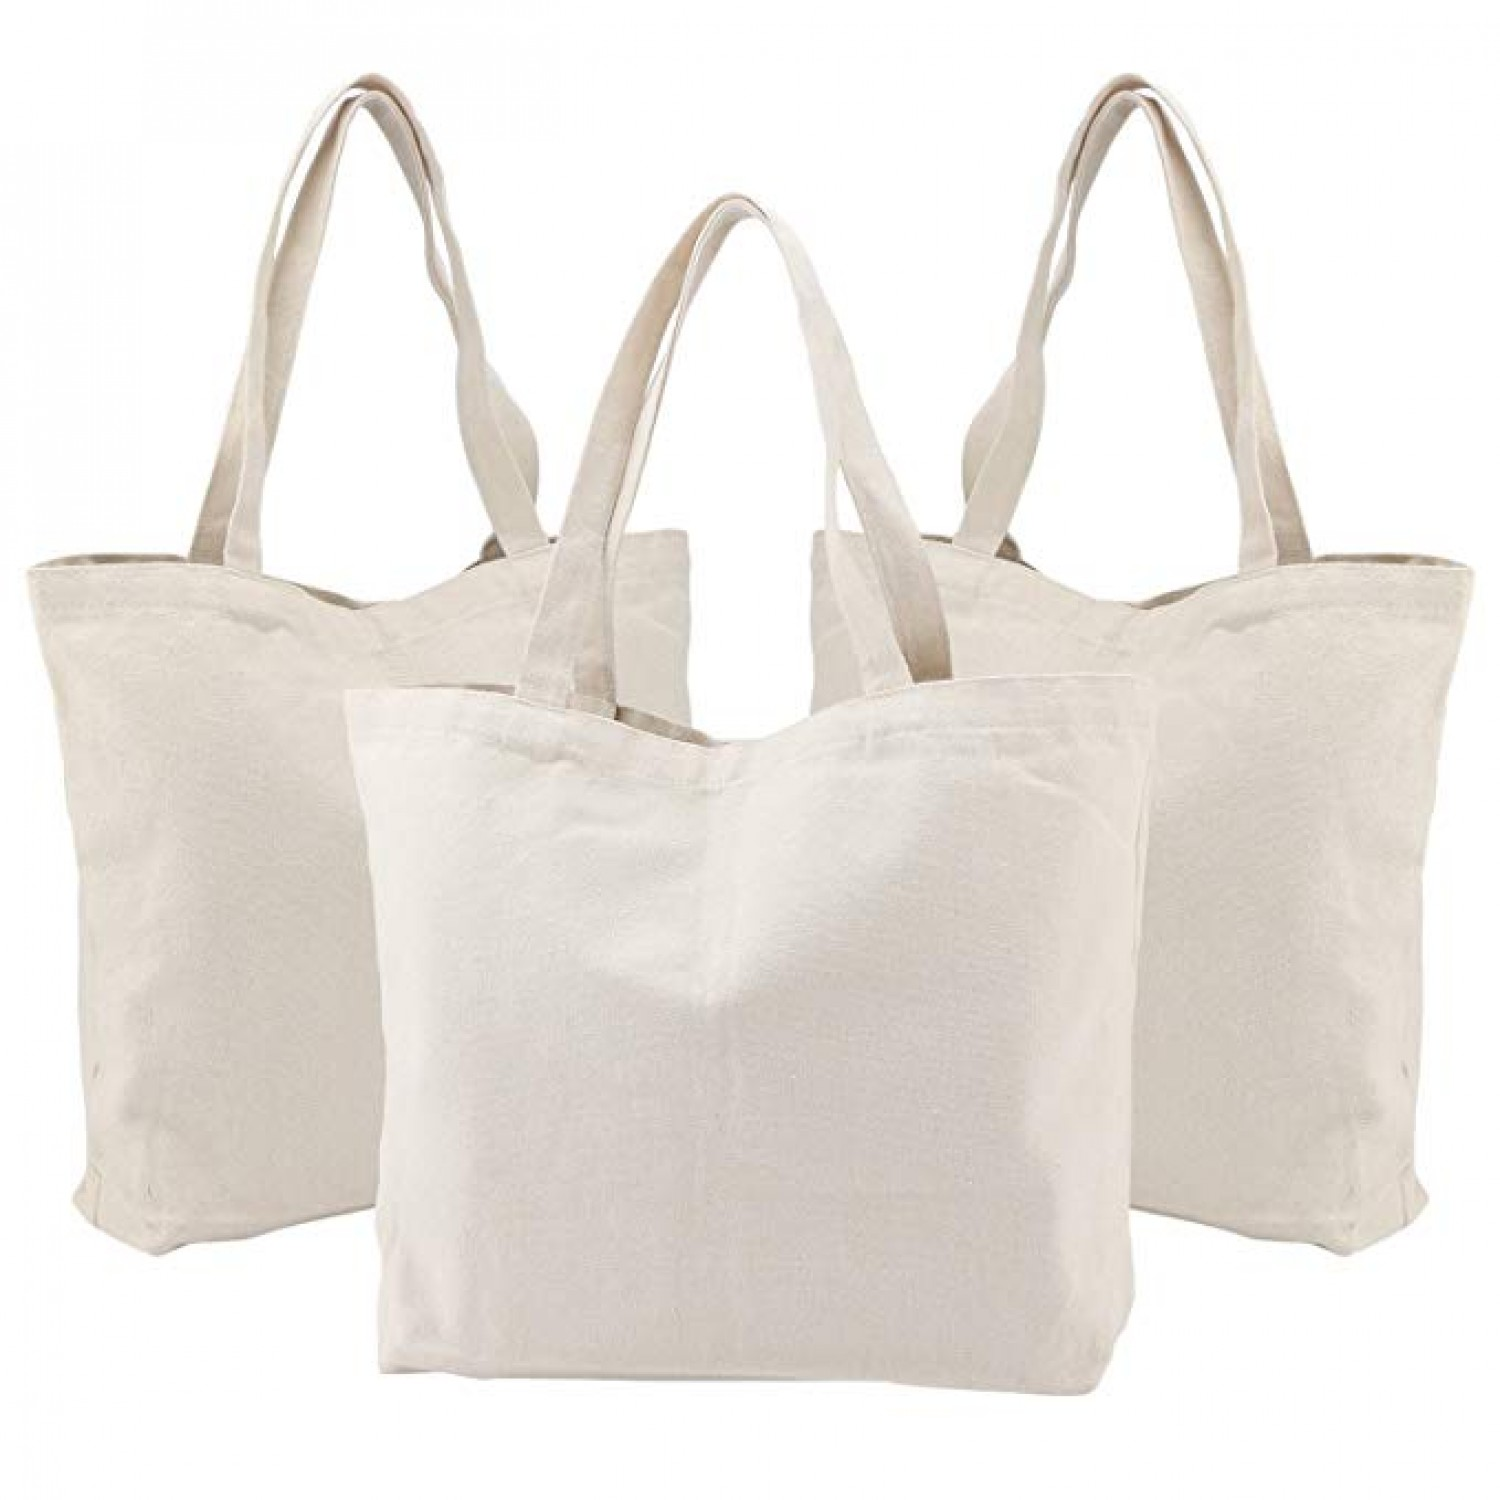 e4a6cb694306 Canvas Shopping Bags, Segarty 3PCS Natural Large Canvas Tote Bags ...